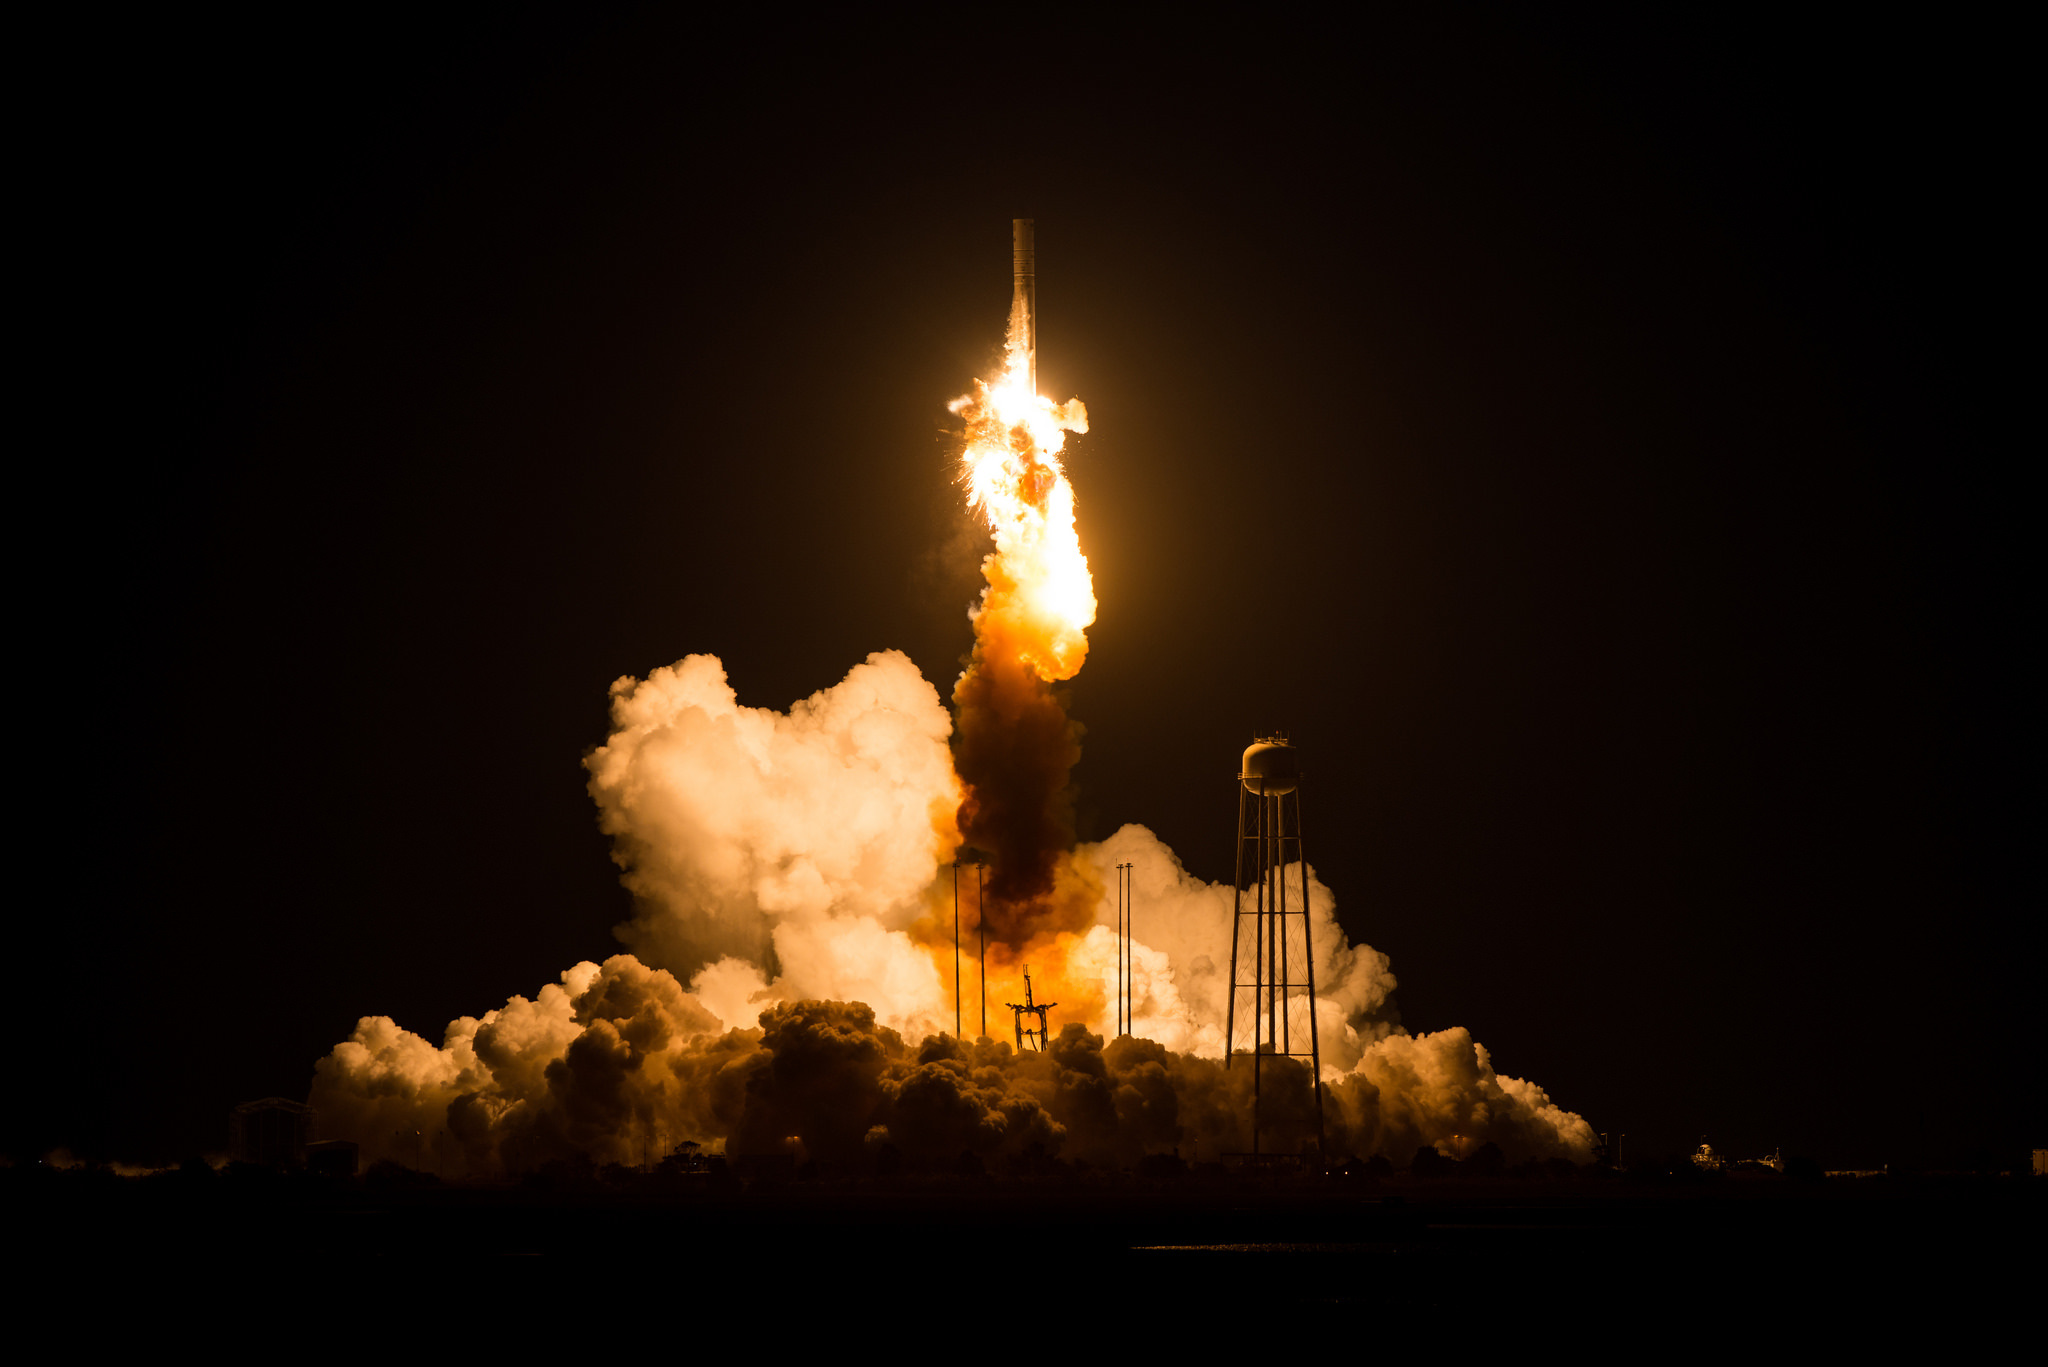 The Orbital ATK Antares rocket exploded moments after launch on October 28, 2014.